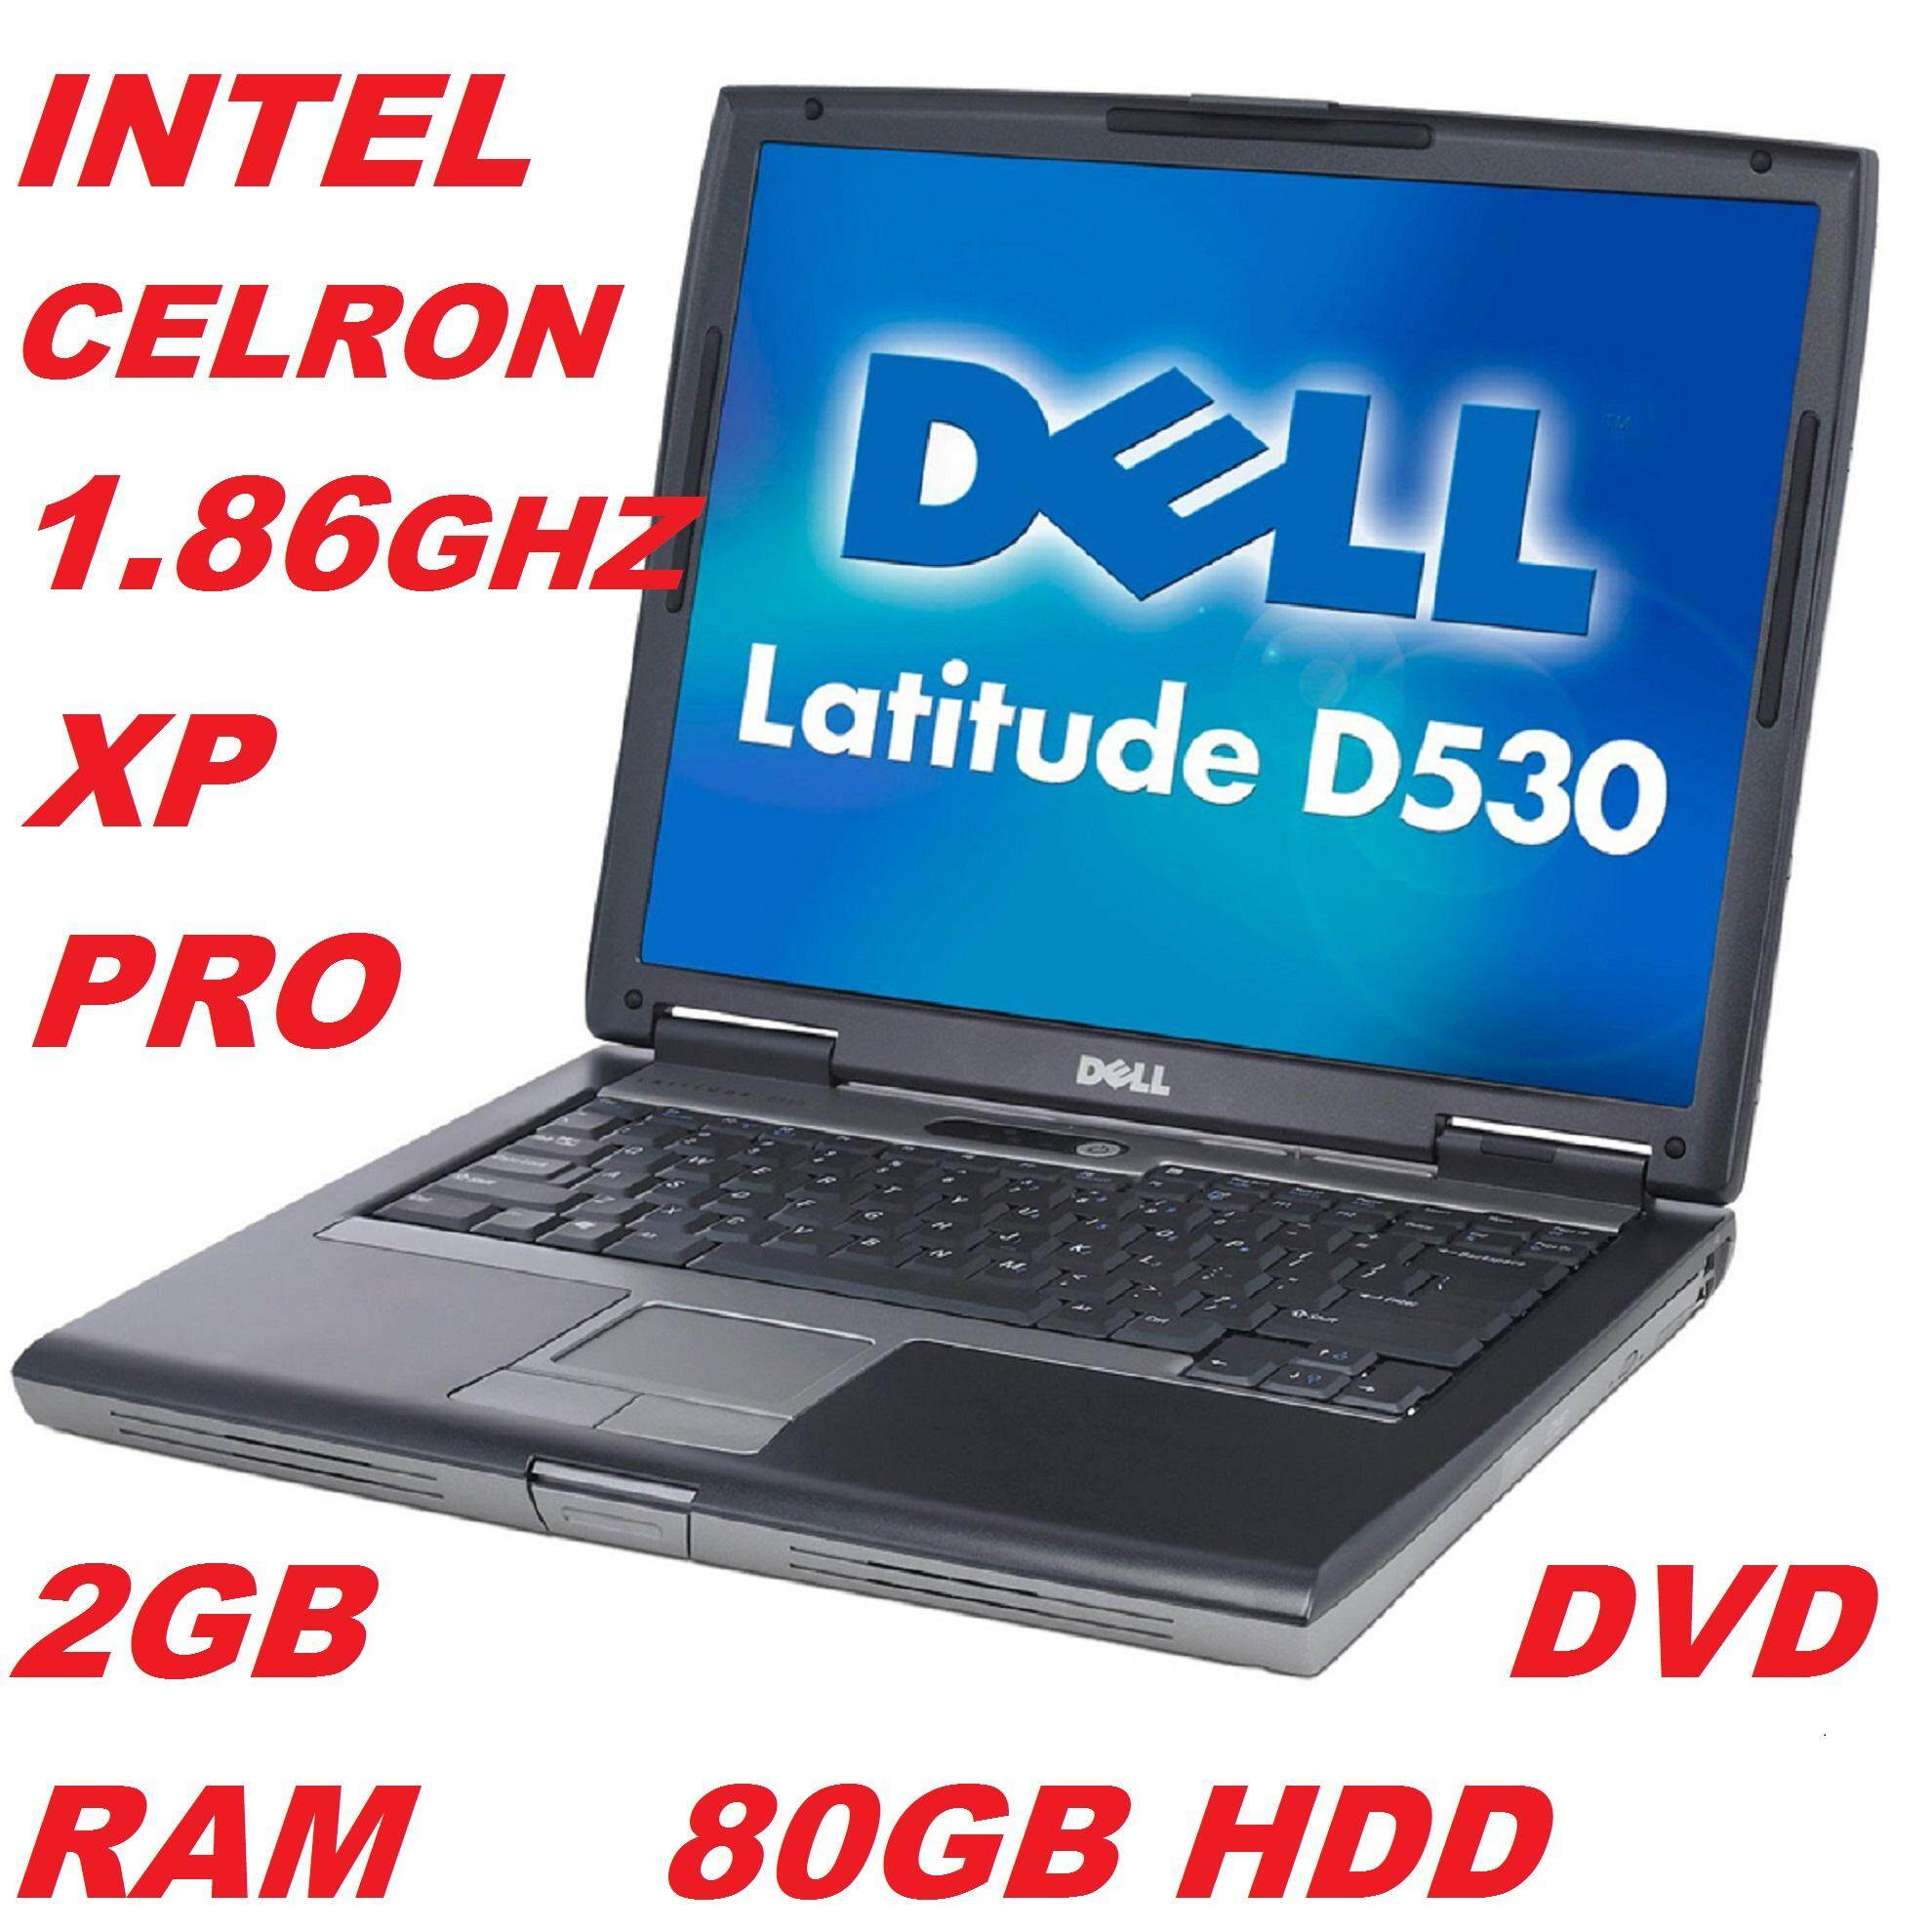 (REFURBISHED)DELL LATITUDE D530, INTEL CELRON 1.86GHZ PROCESSOR, 2GB RAM/80GB HDD/14 LCD/DVD/ BUILT IN WIFI/WIN XP PRO Malaysia